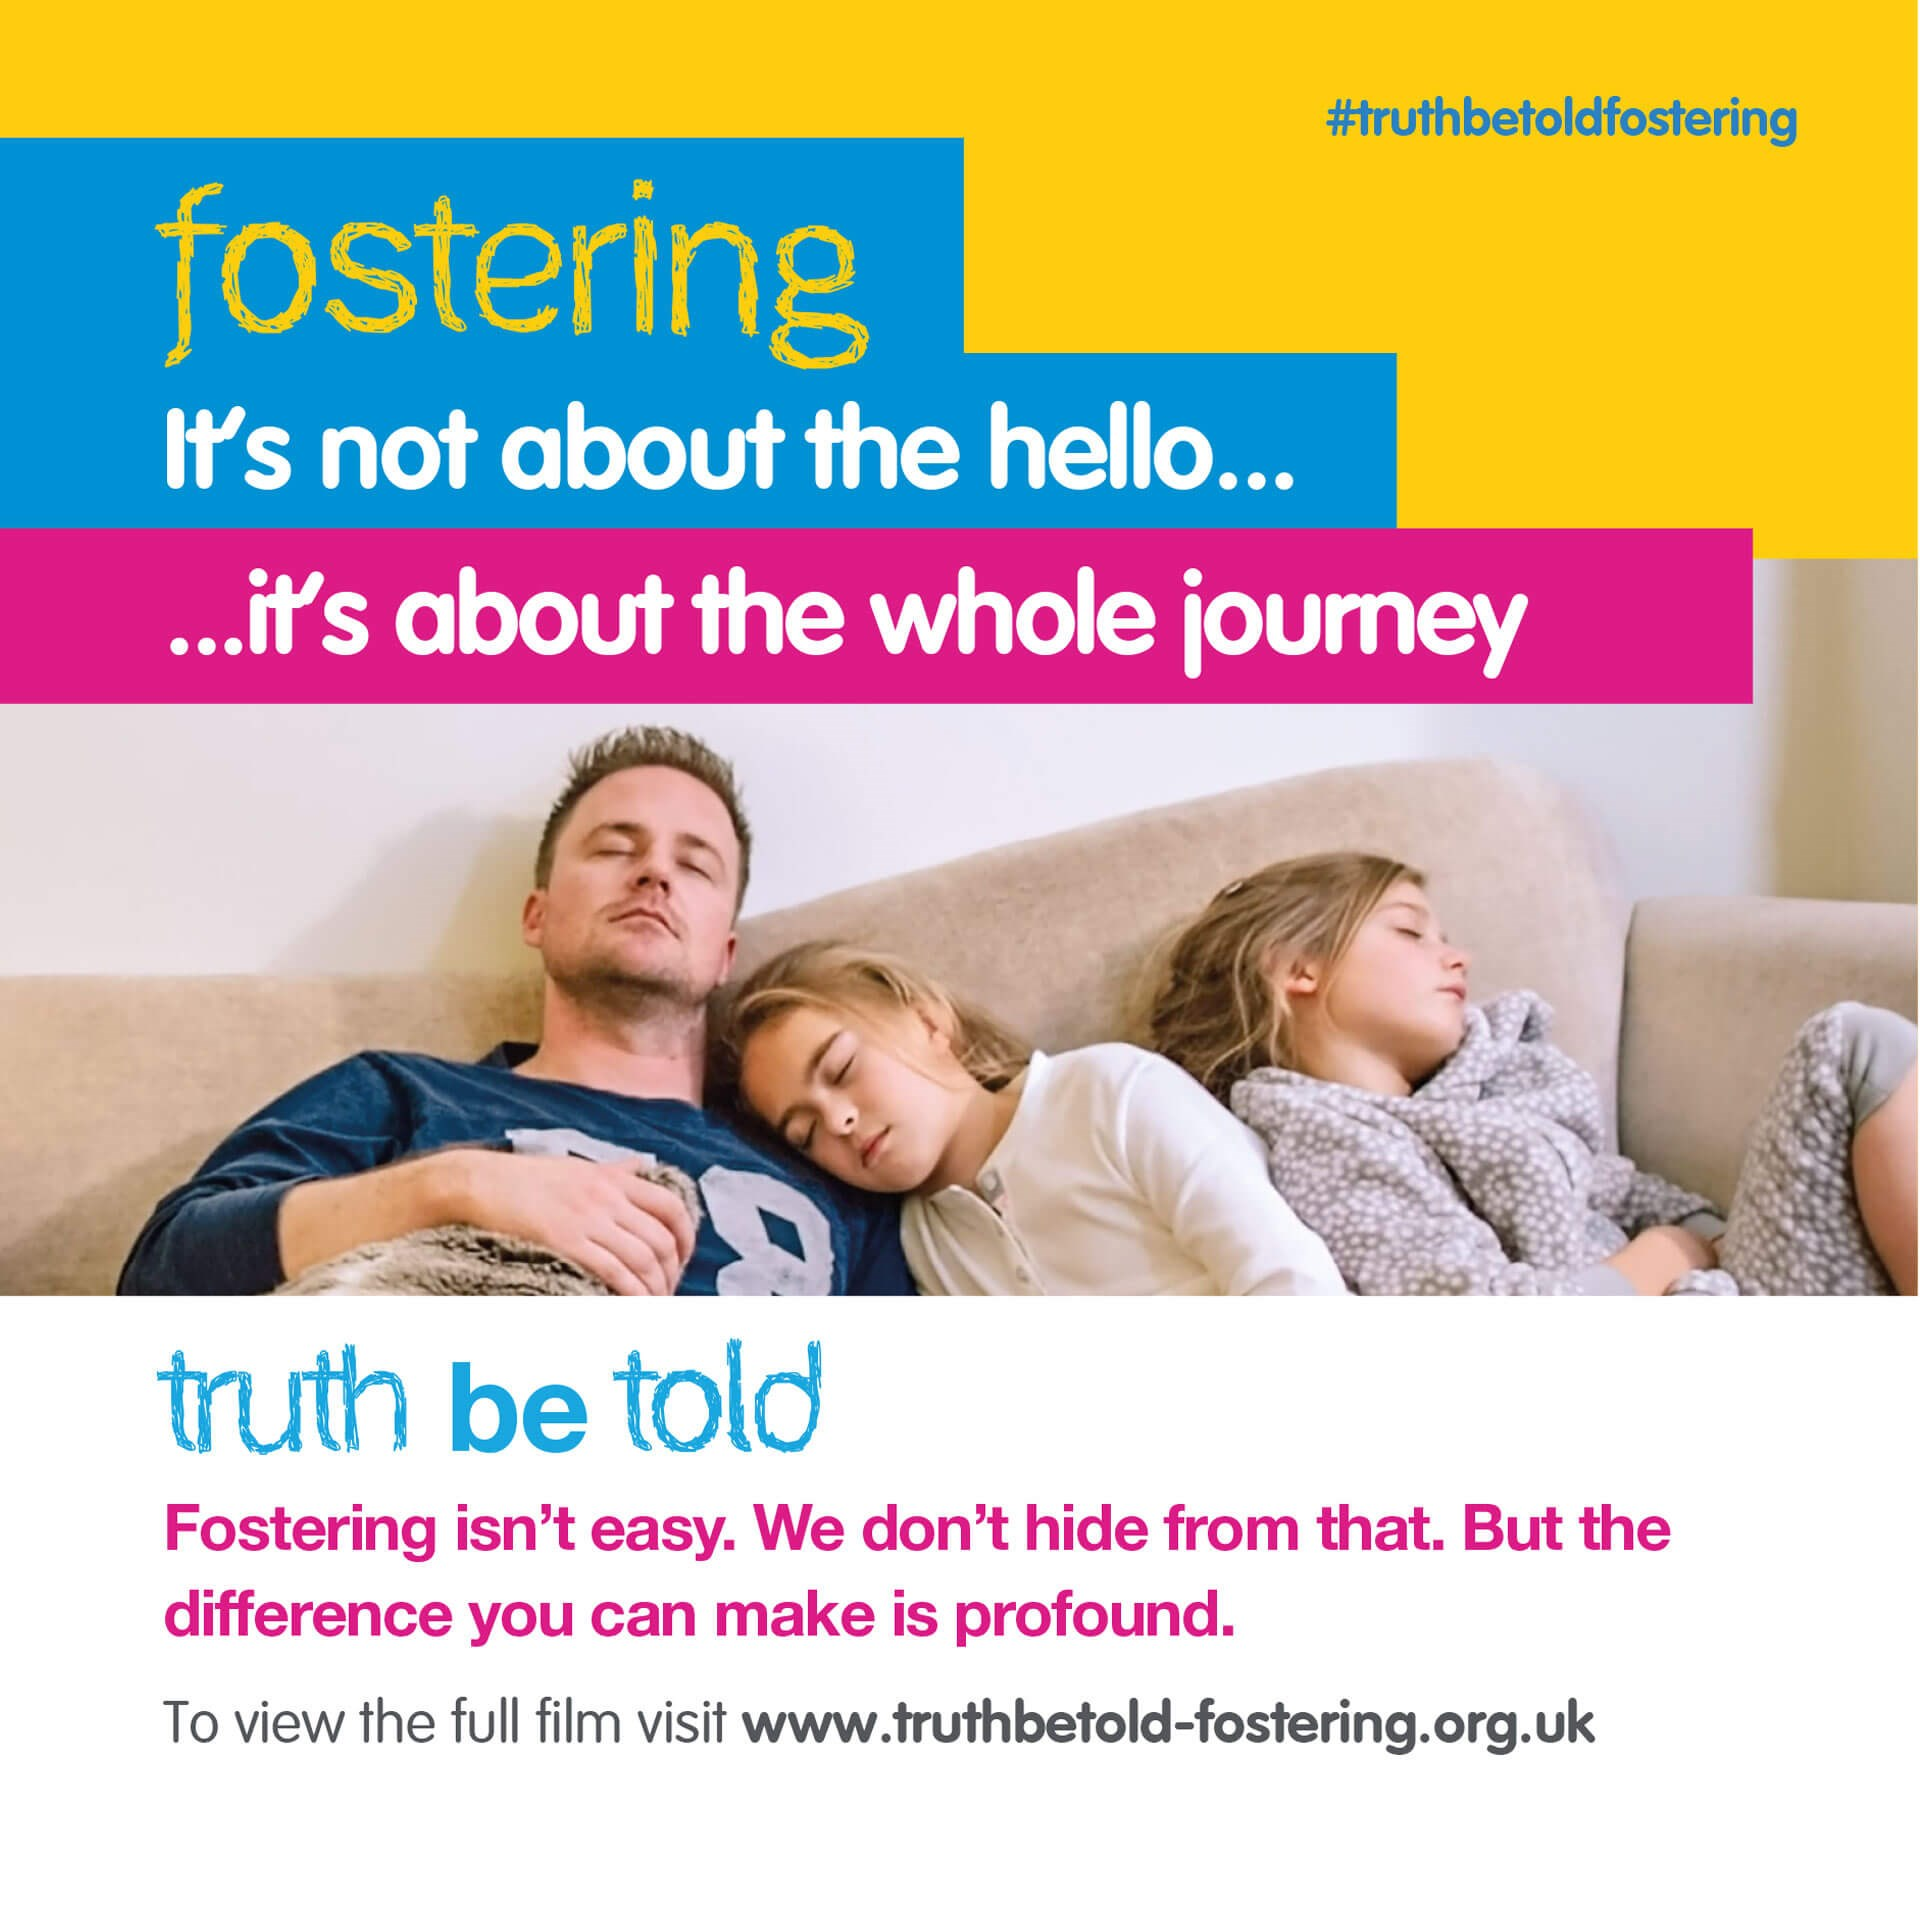 Fostering, it's not about the hello, it's about the whole journey